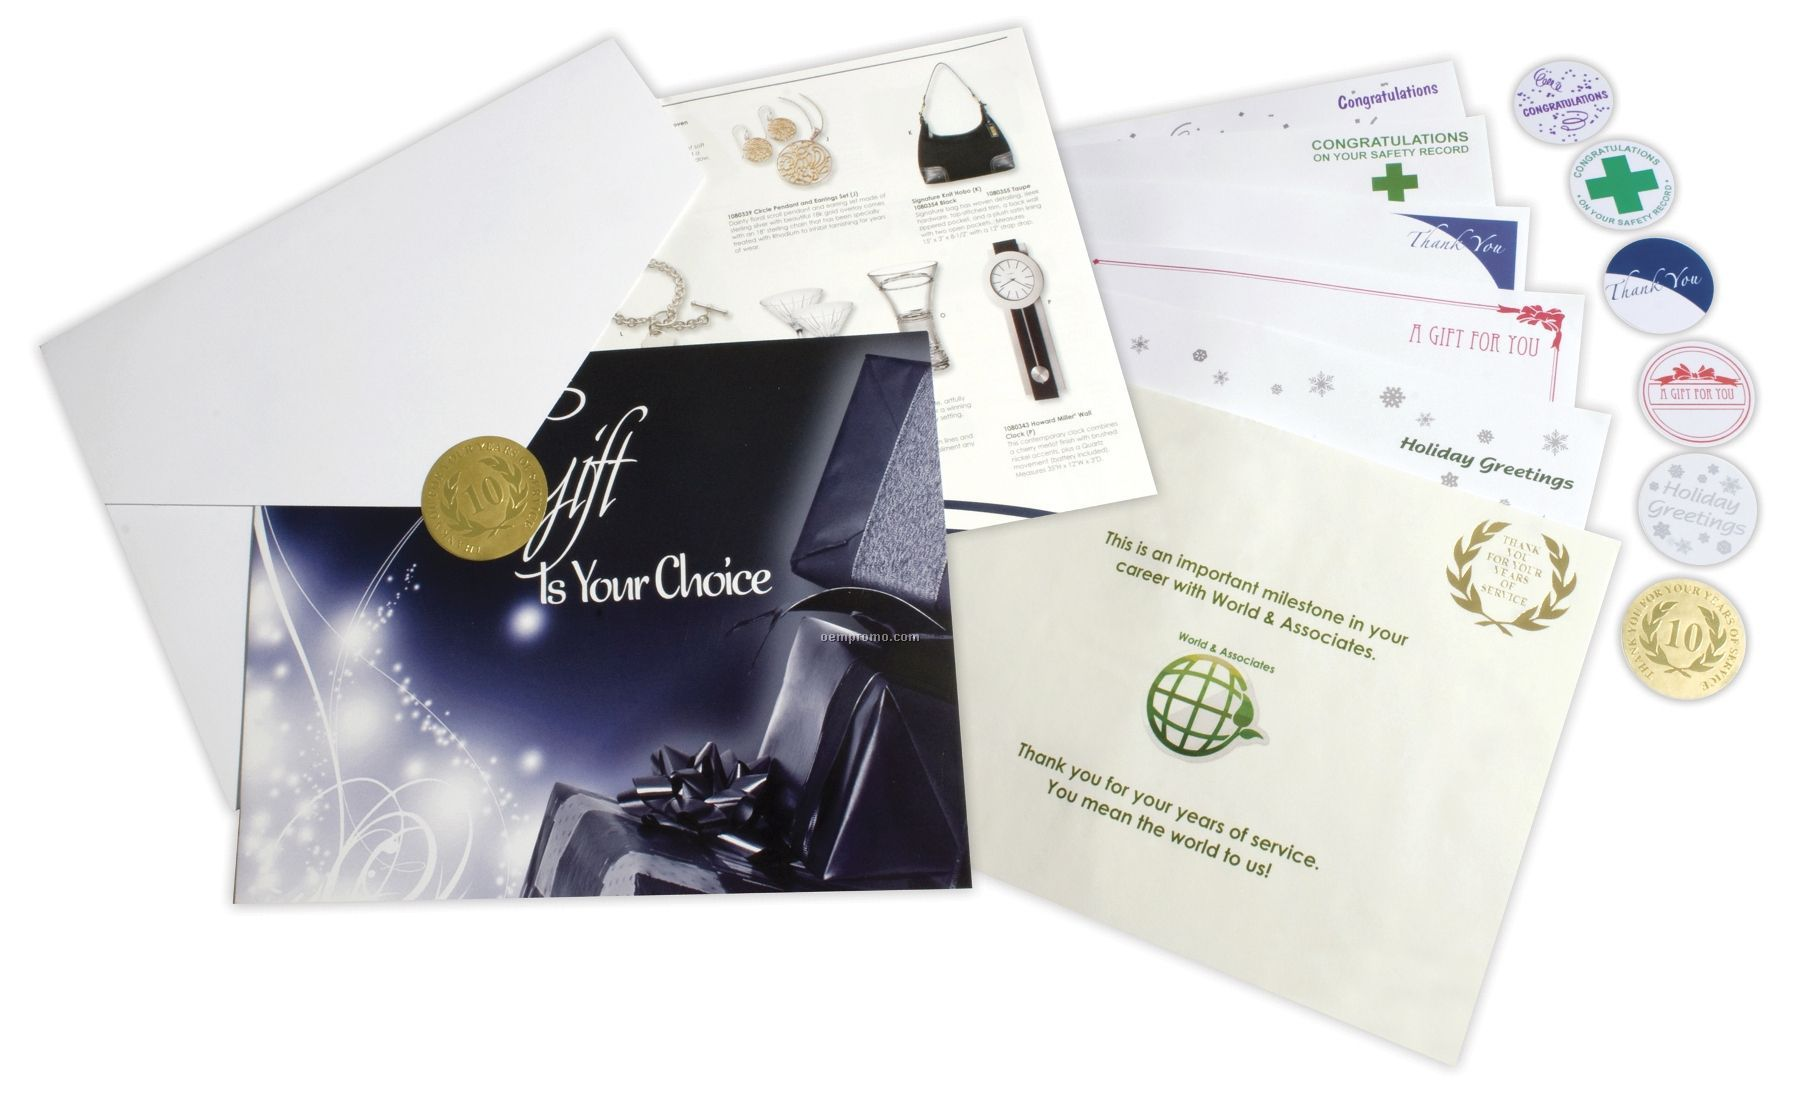 $35 Gift Of Choice (Topaz Level) Gift Booklet